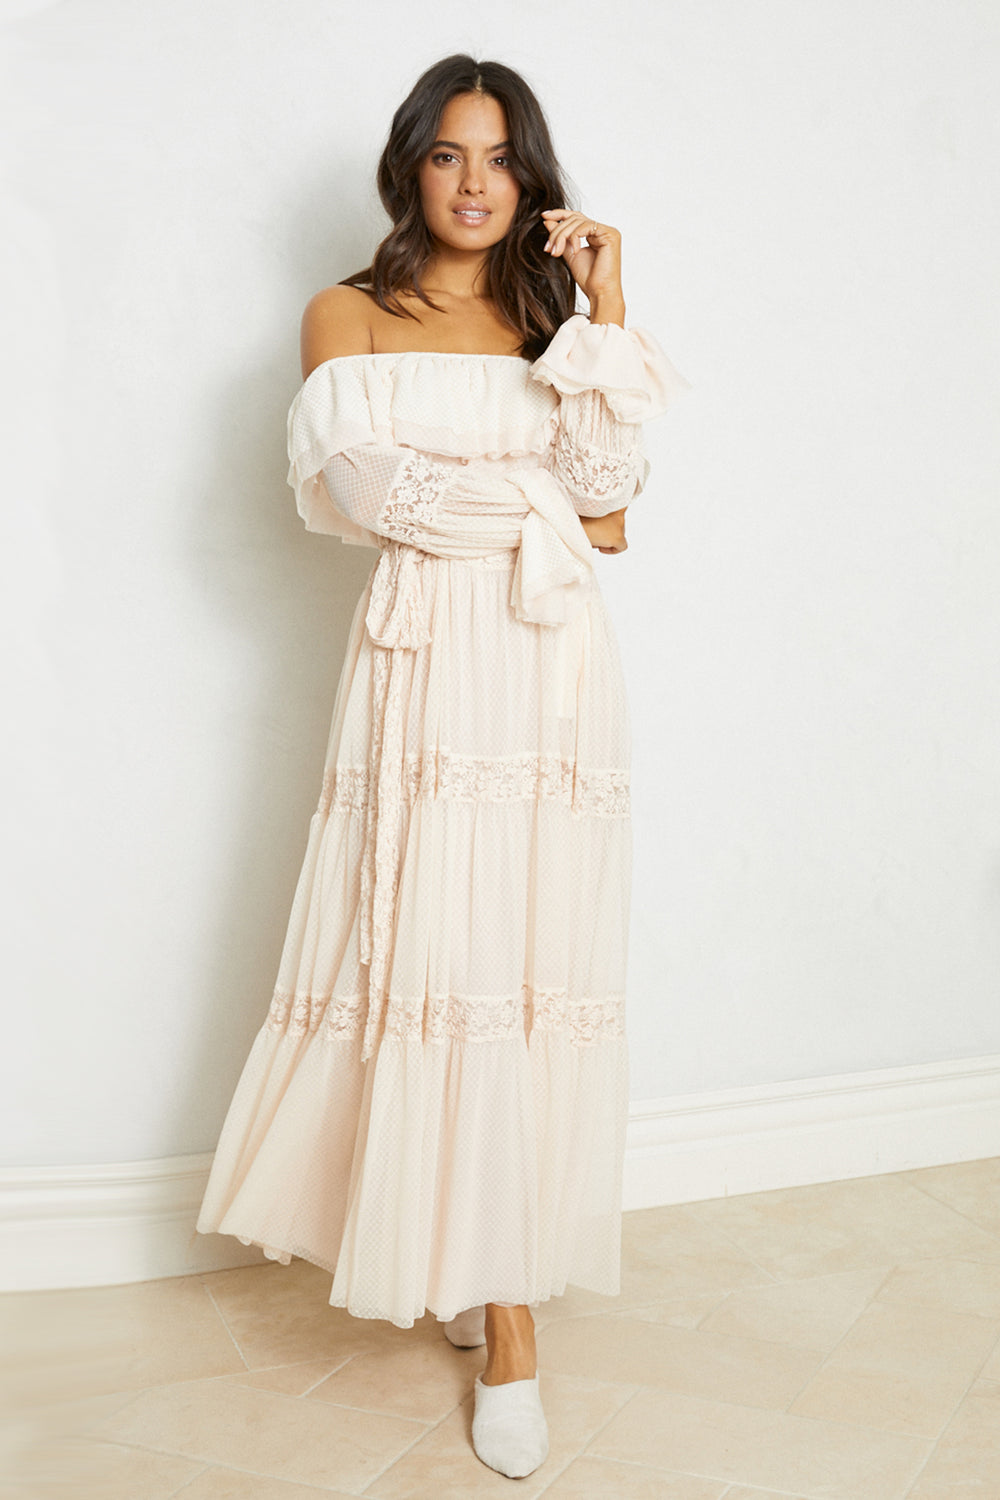 Cream off the shoulder vintage inspired lace ruffle maxi dress with sleeves. | Model is wearing Size XS/S